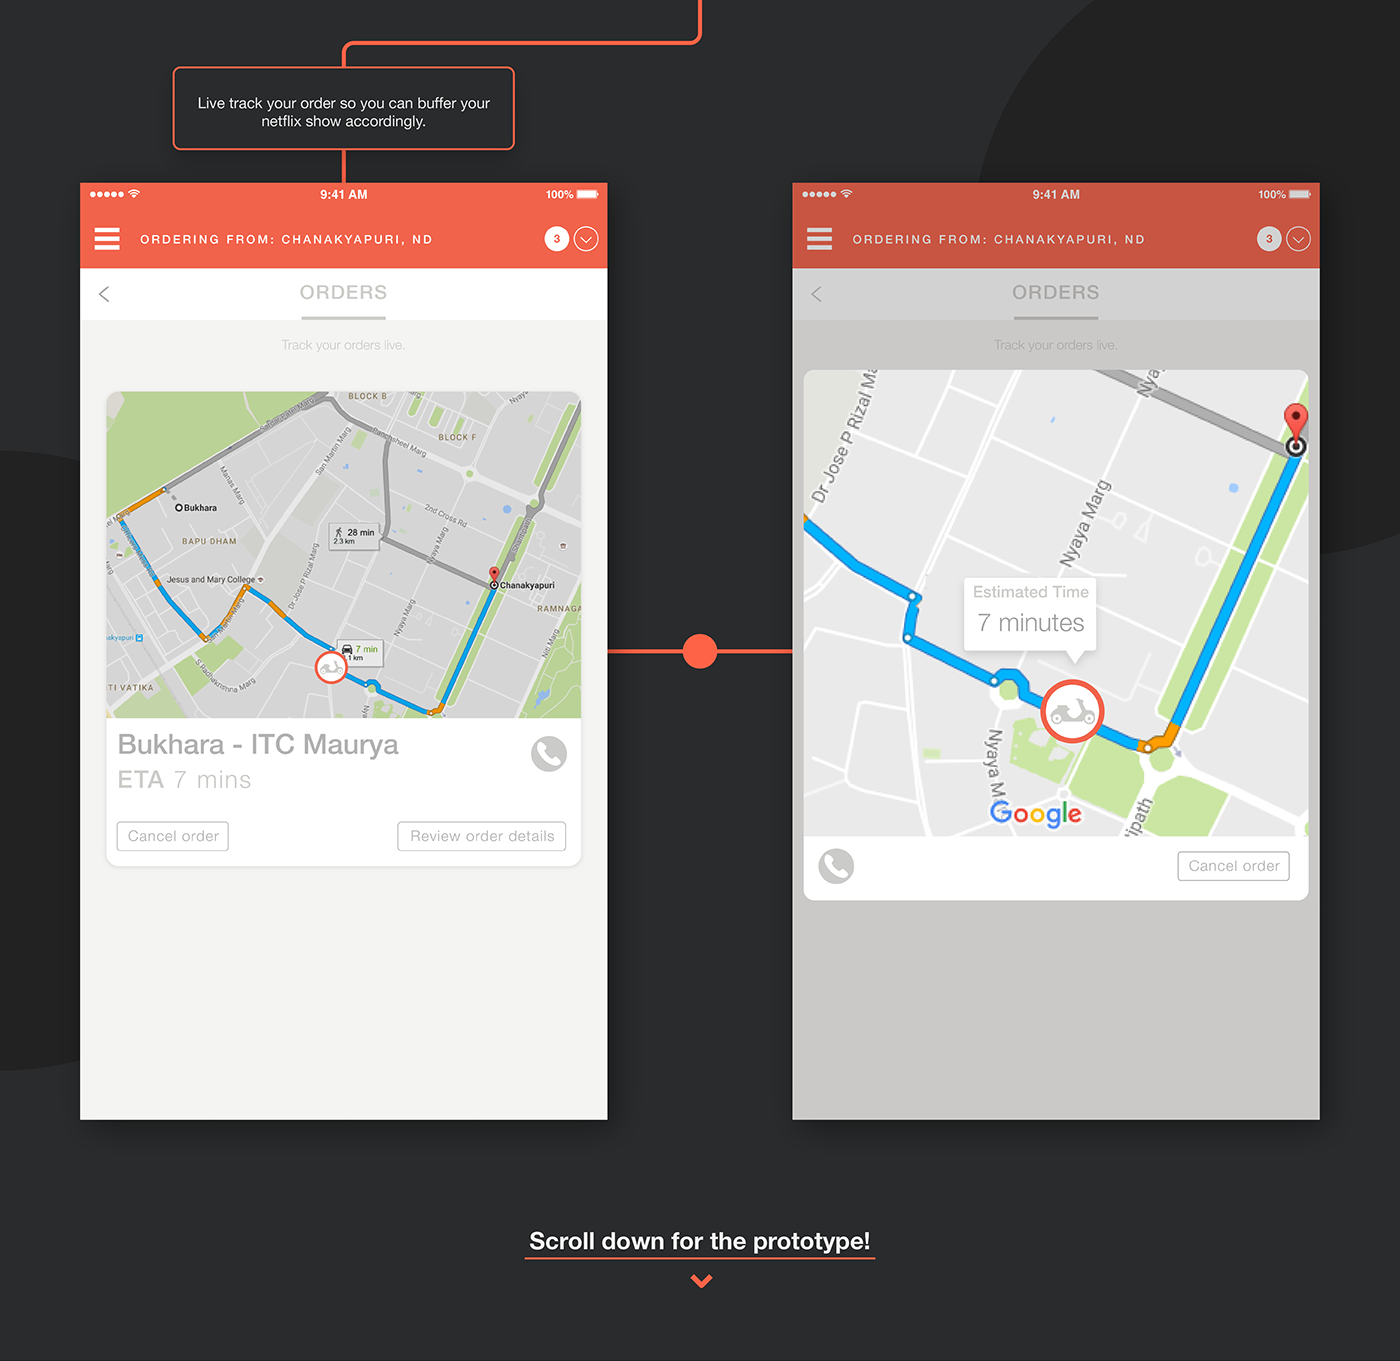 Food  delivery app application user interface user experience zomato orange adobeawards